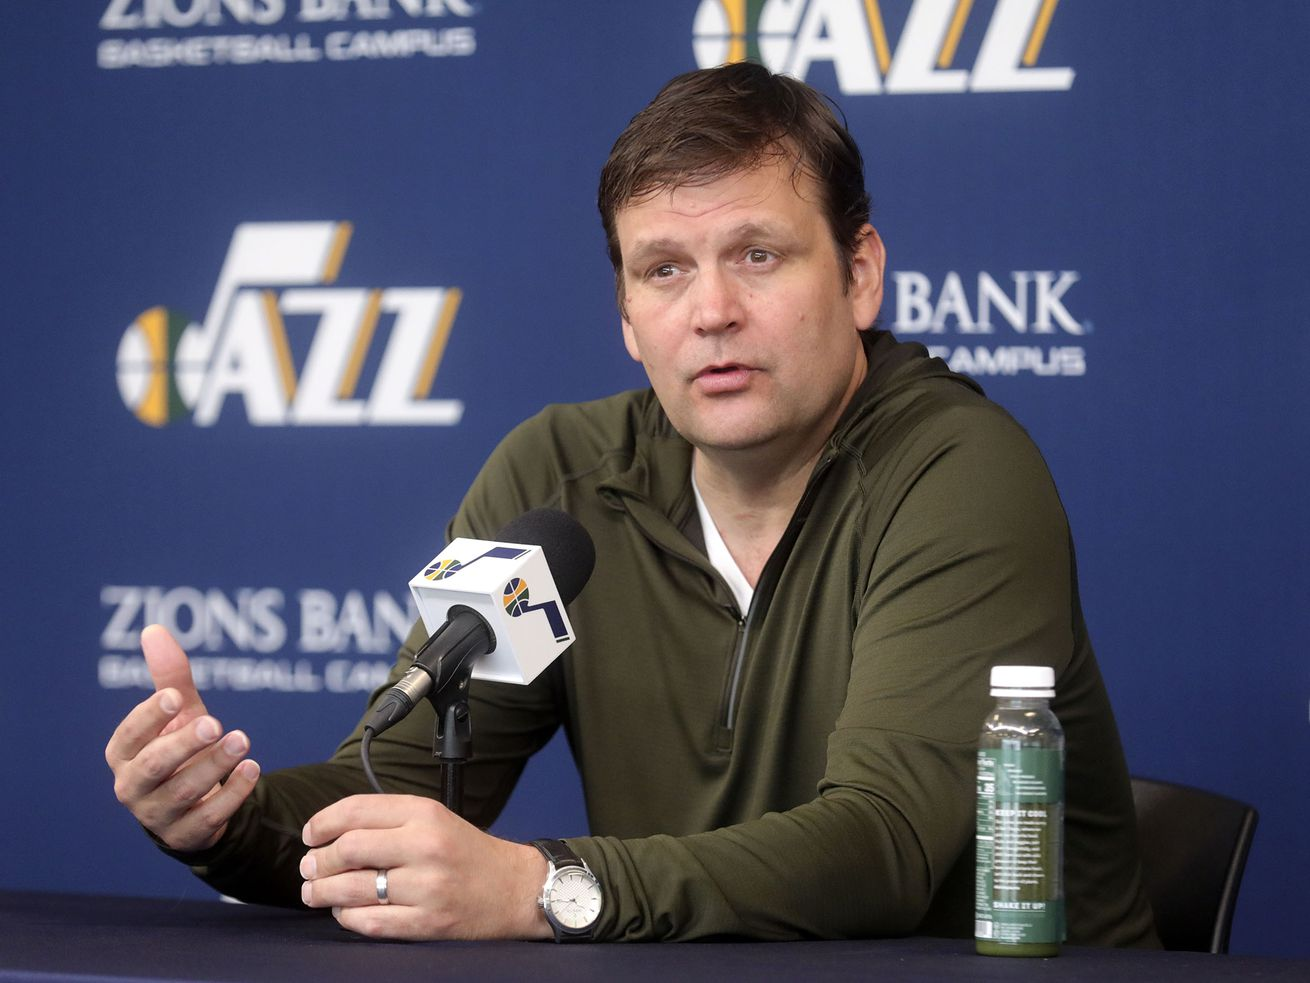 Dennis Lindsey, Utah Jazz general manager, talks to members of the media at the Zions Bank Basketball Center in Salt Lake City on Thursday, April 25, 2019. The Utah Jazz season ended with Wednesday's loss to Houston in the playoffs.